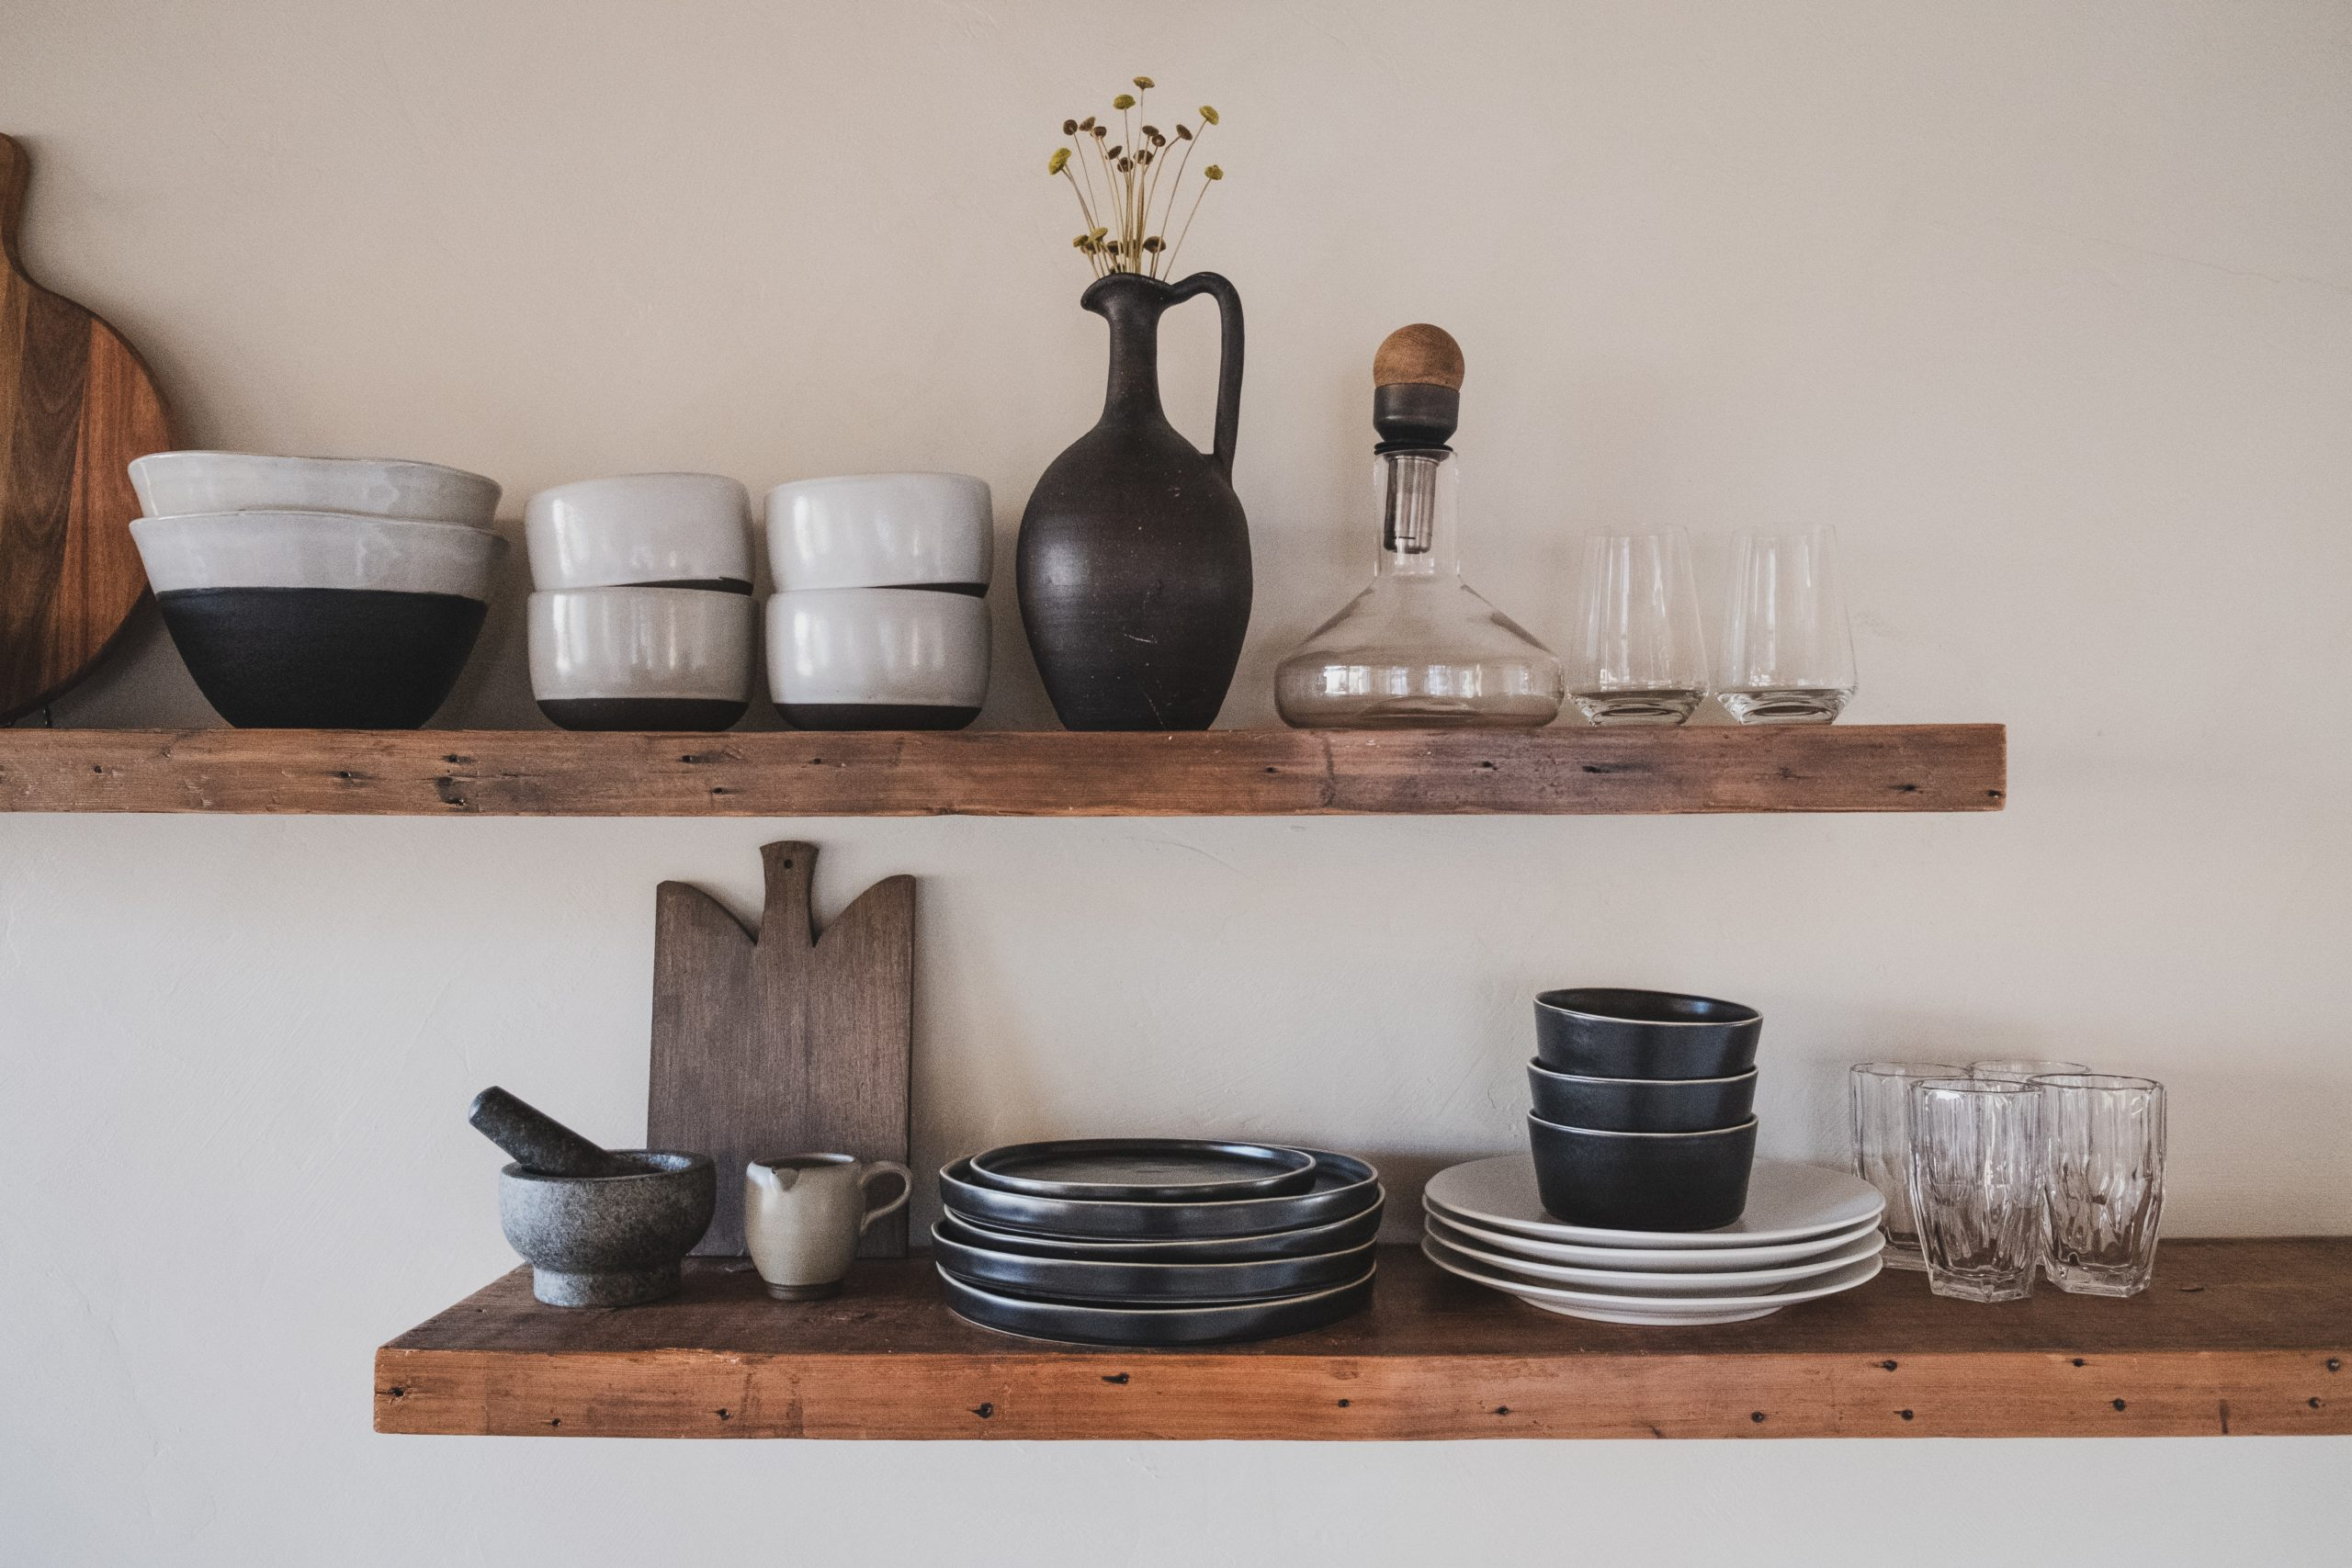 Using shelves in your downsized home